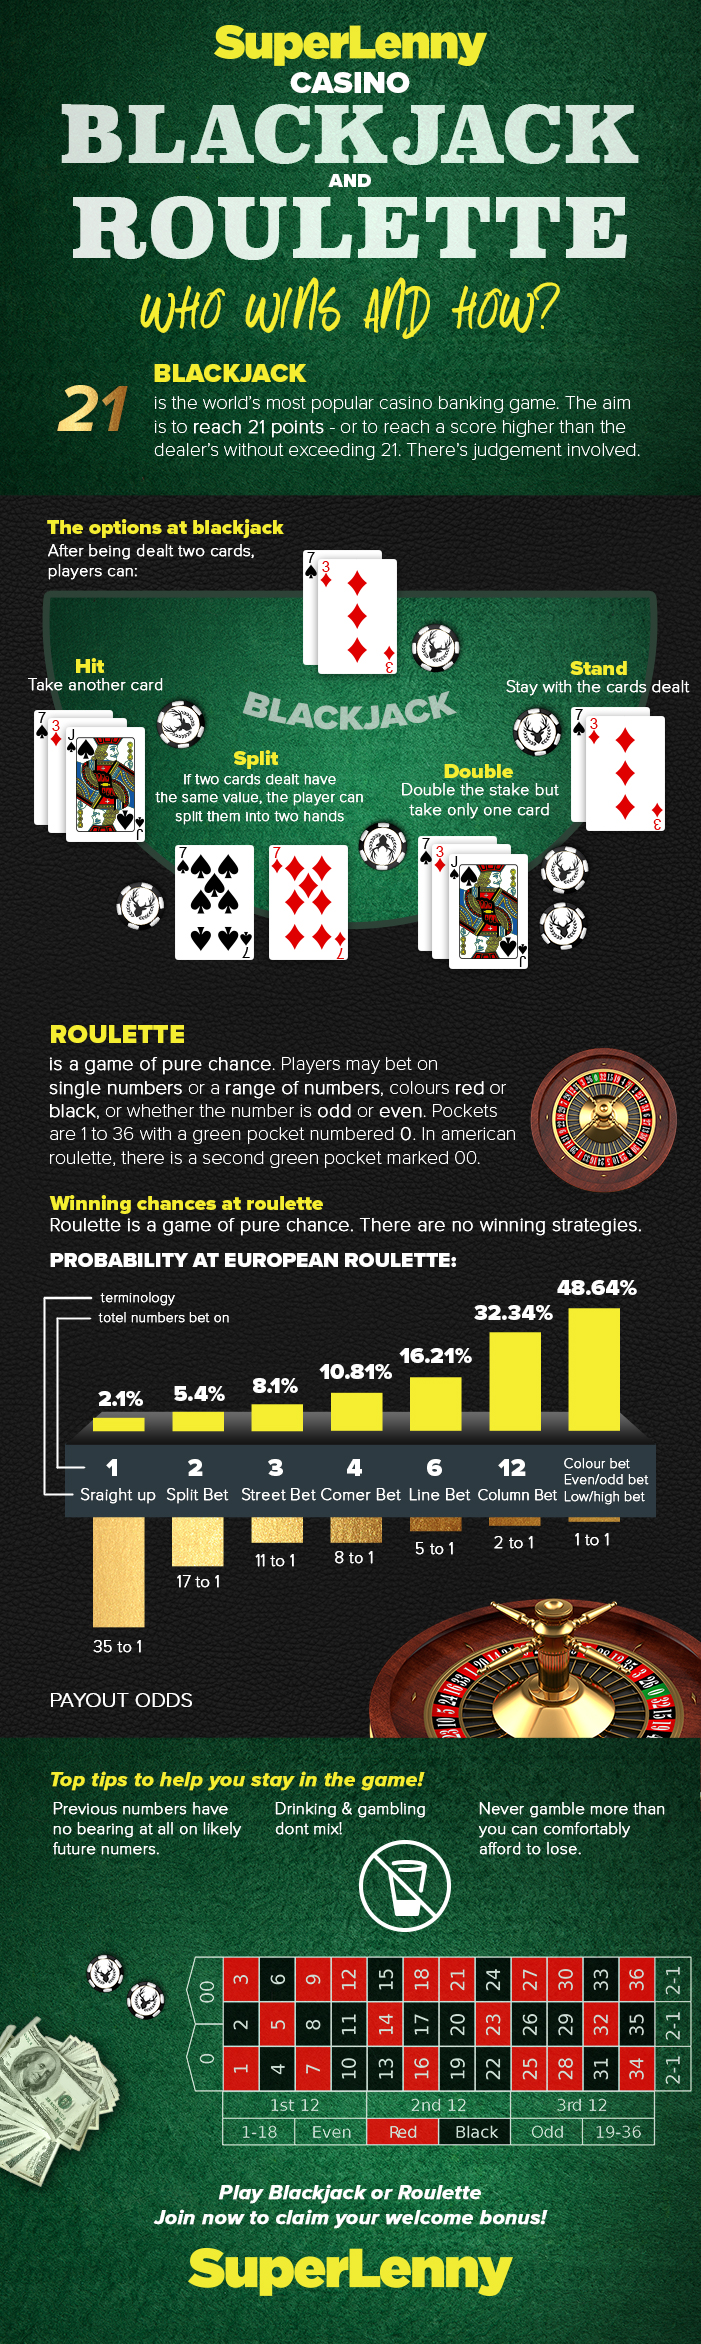 superlenny-blackjack-roulette-infographic05x